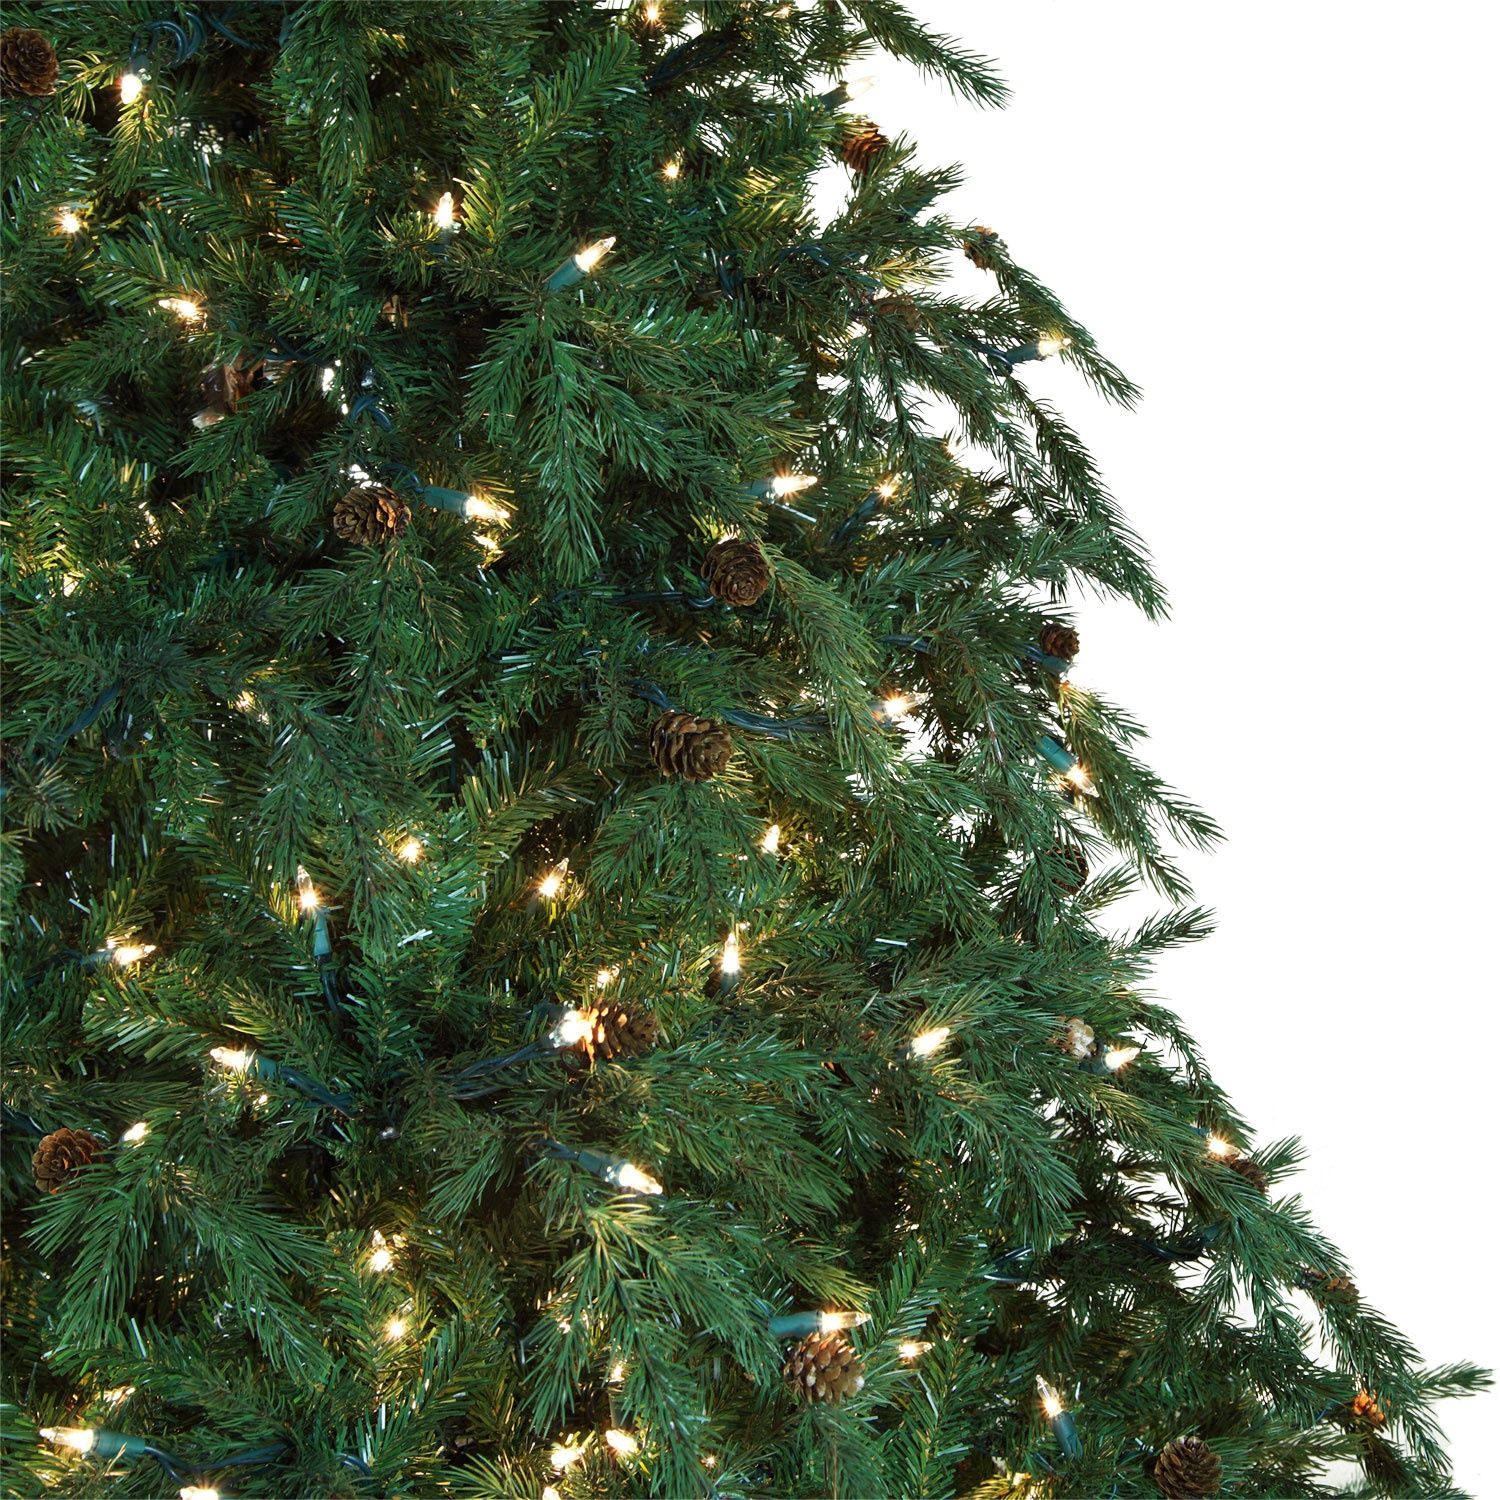 prelit tree hunter_profilejpg - Mountain King Christmas Trees